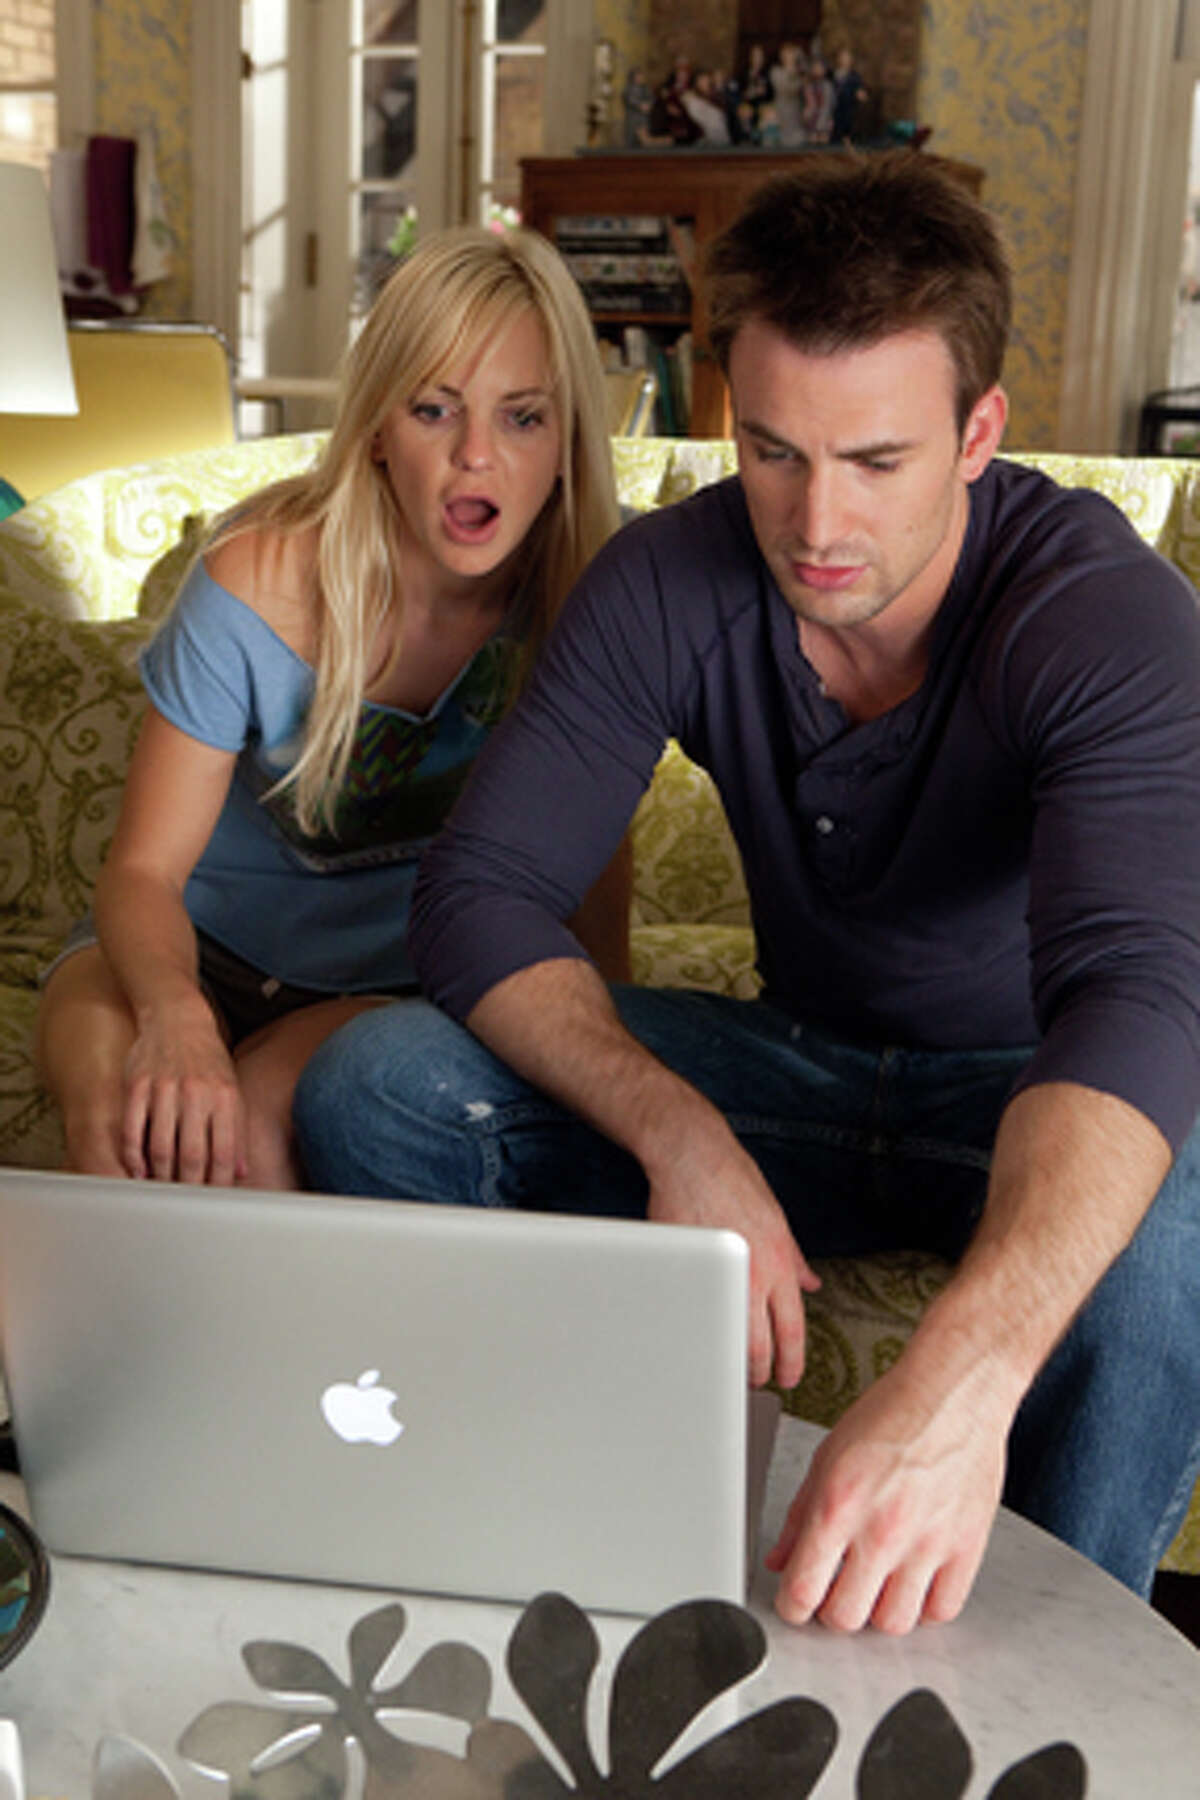 Anna Faris as Ally Darling and Chris Evans as Colin Shea in